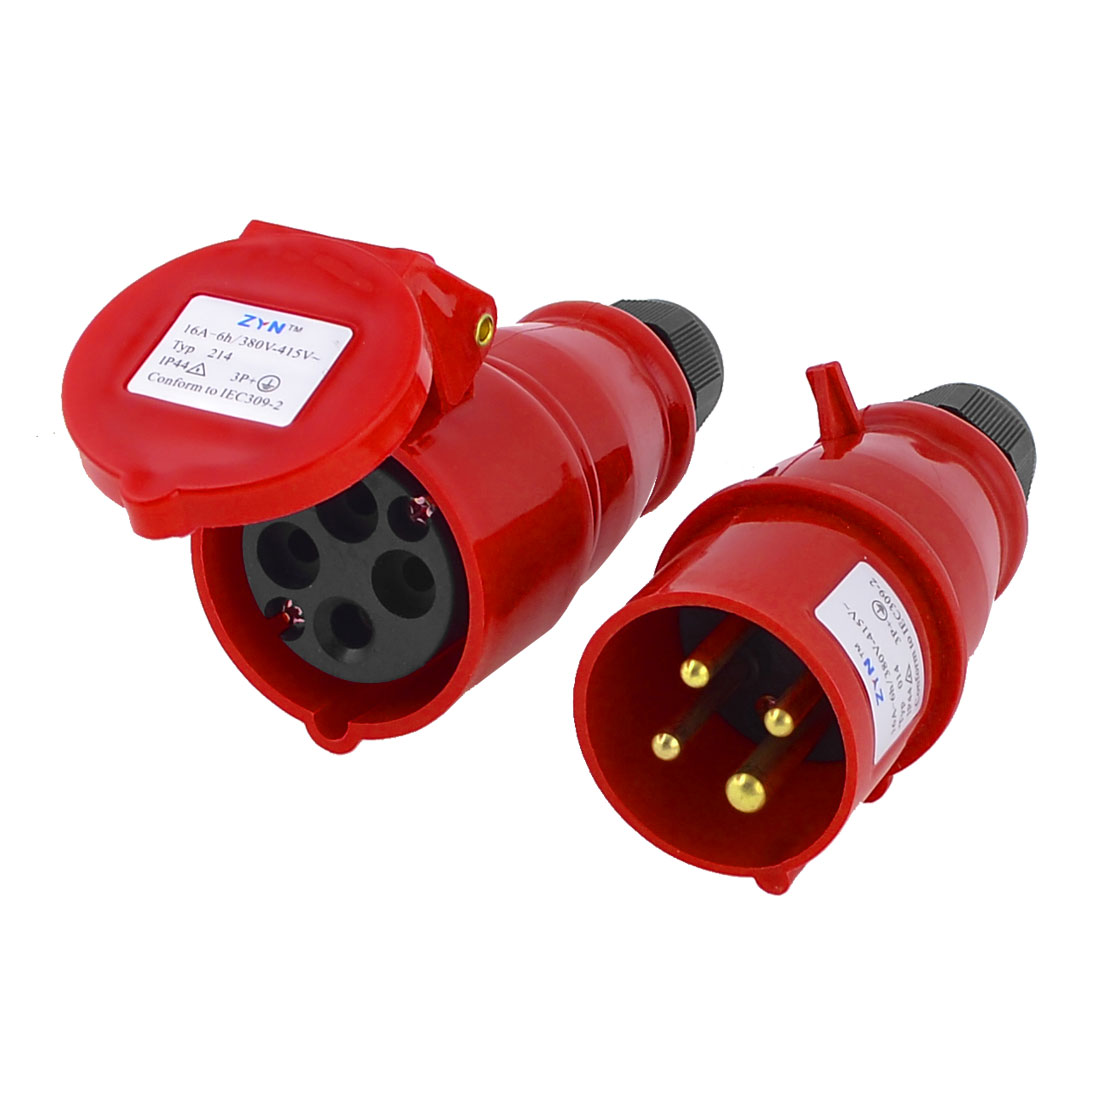 220-240V AC 16A IP44 3P+E IEC309-2 Round Pin Industrial Plug Socket Red